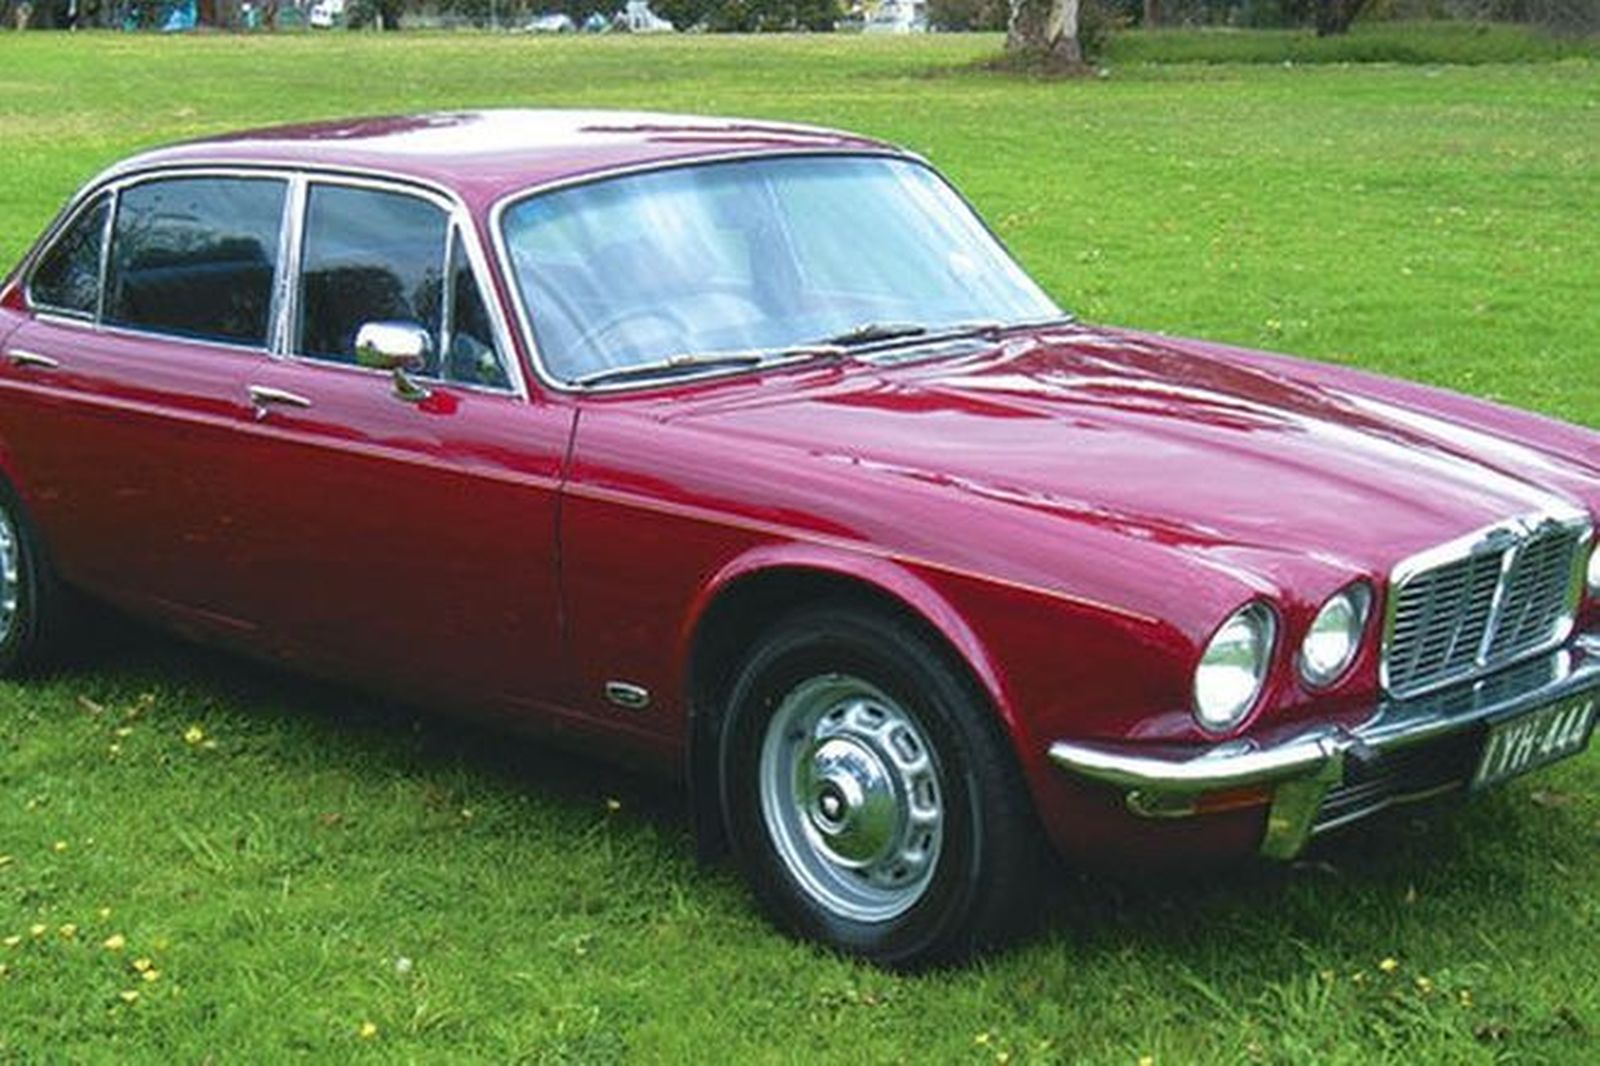 sold jaguar xj6 series 2 saloon auctions lot 39 shannons. Black Bedroom Furniture Sets. Home Design Ideas